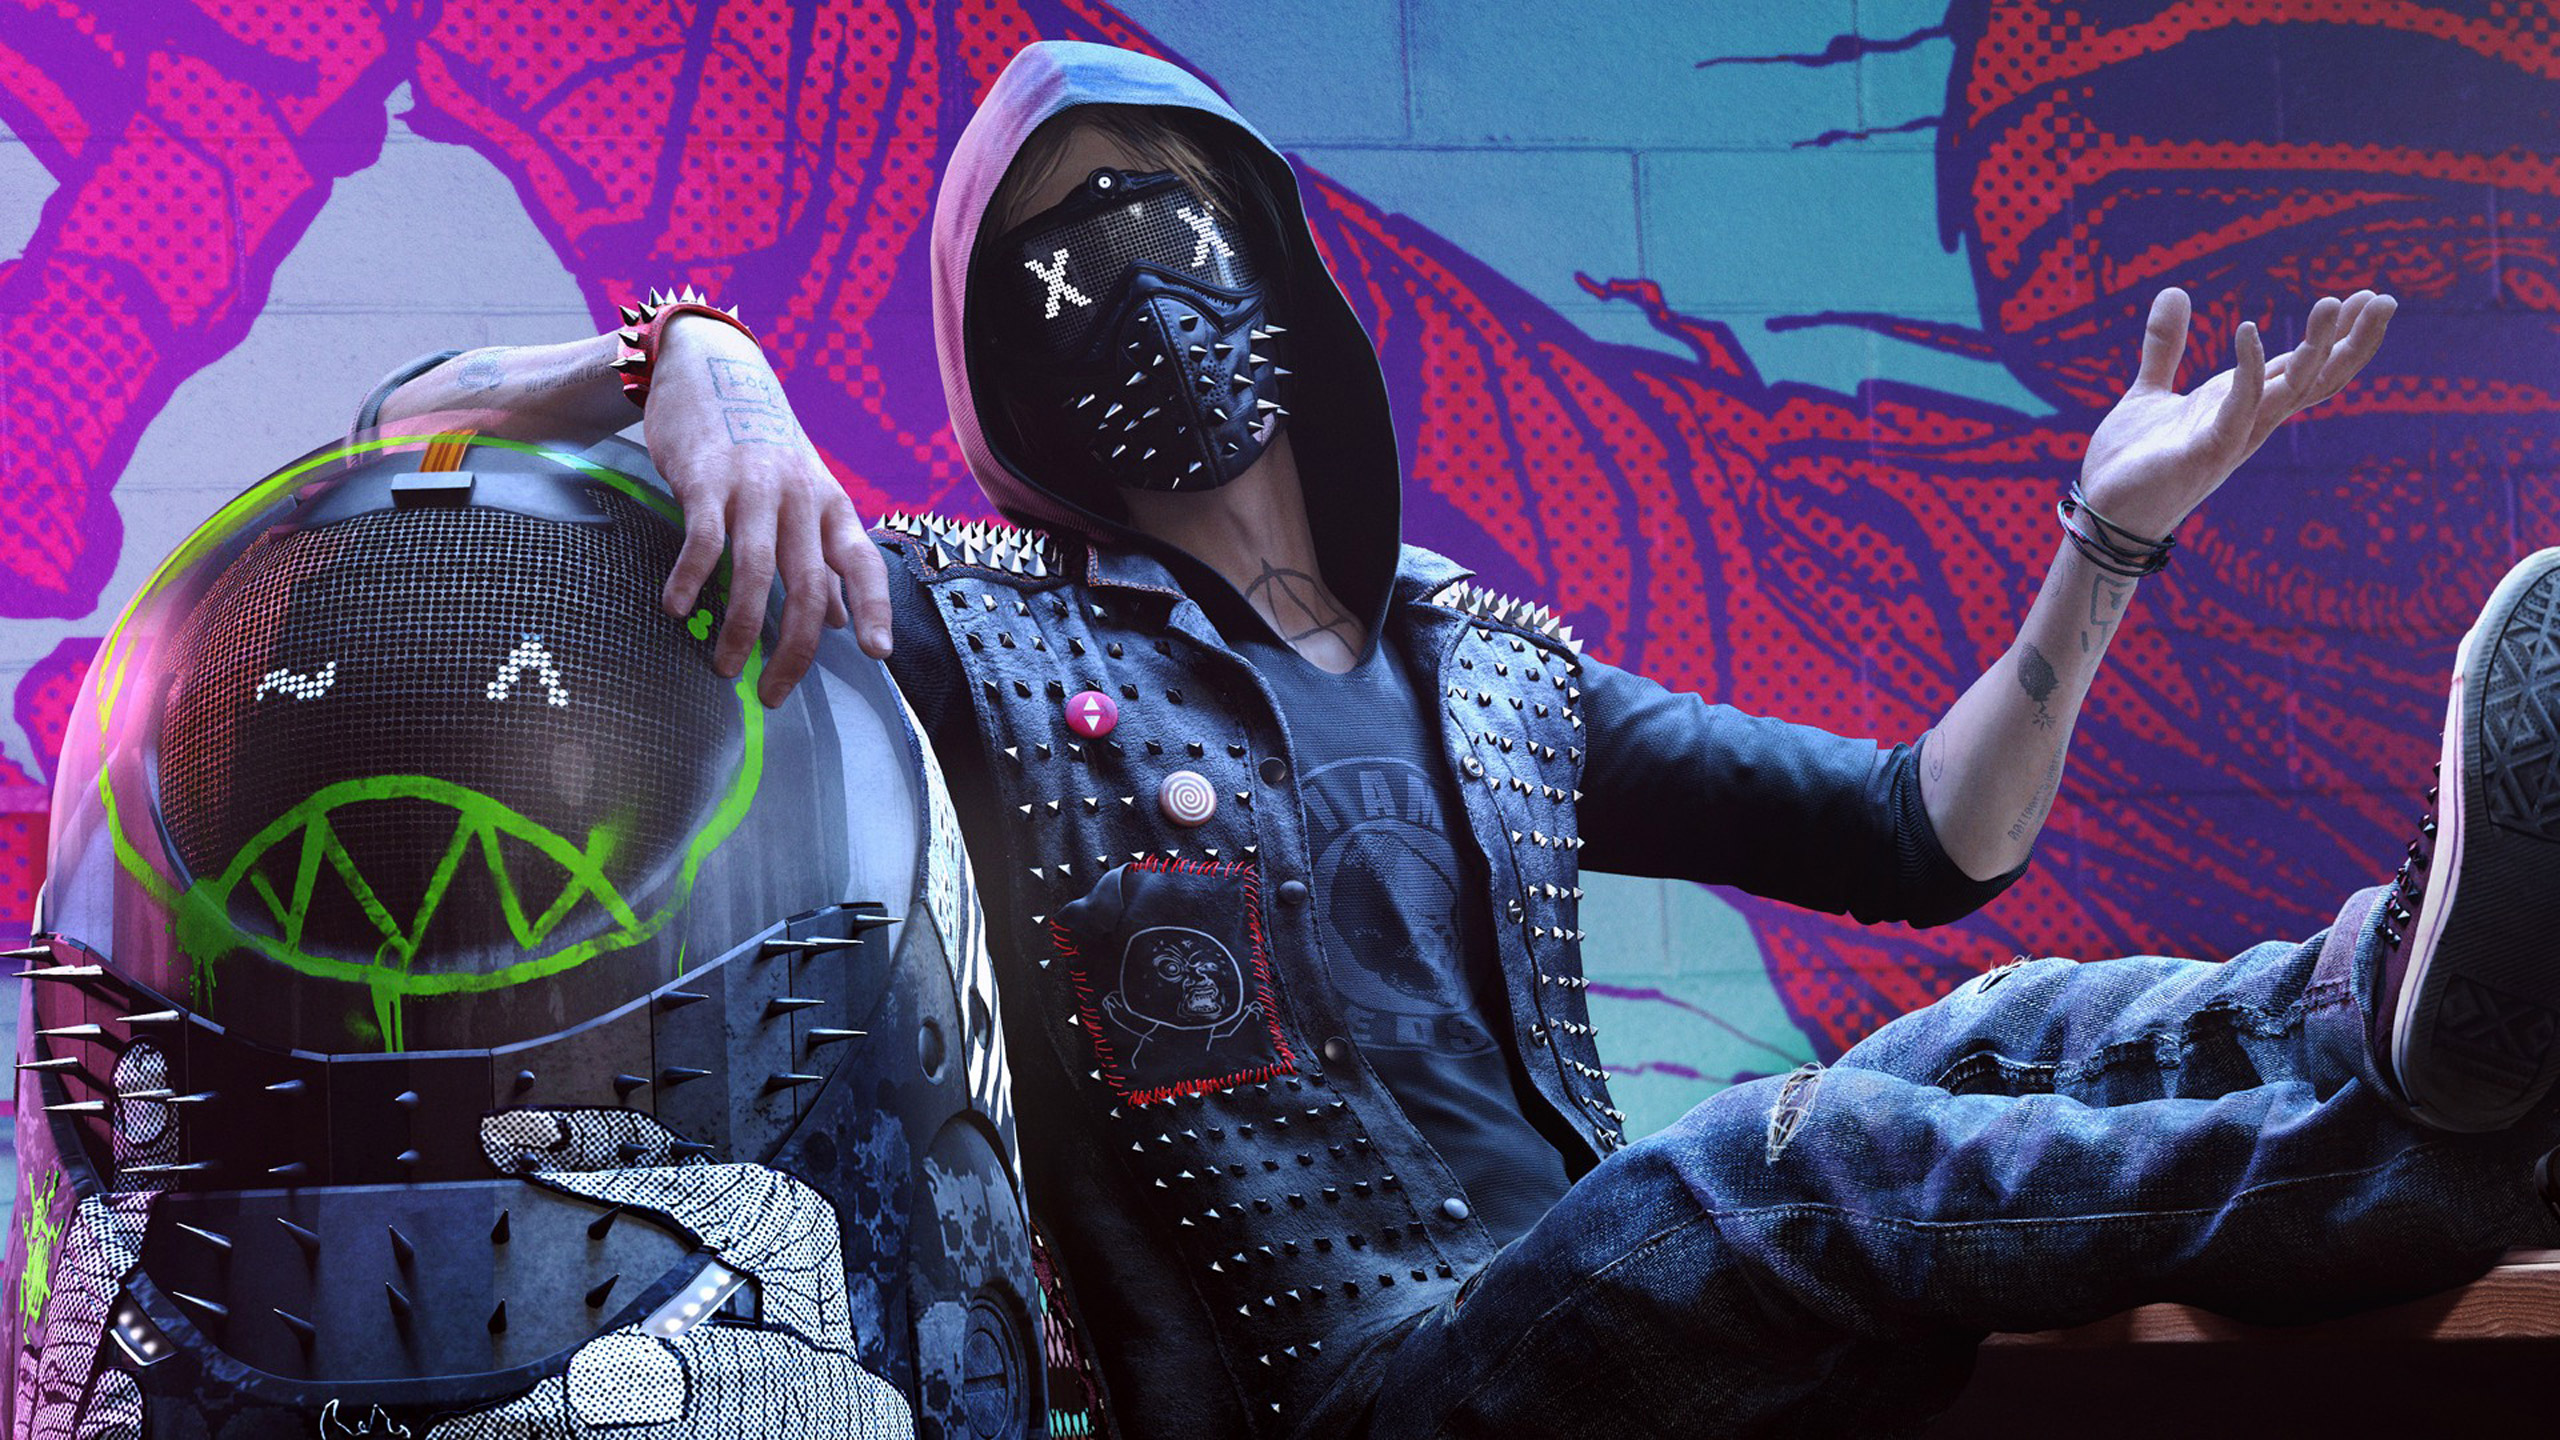 Wrench Watch Dogs 2 HD...